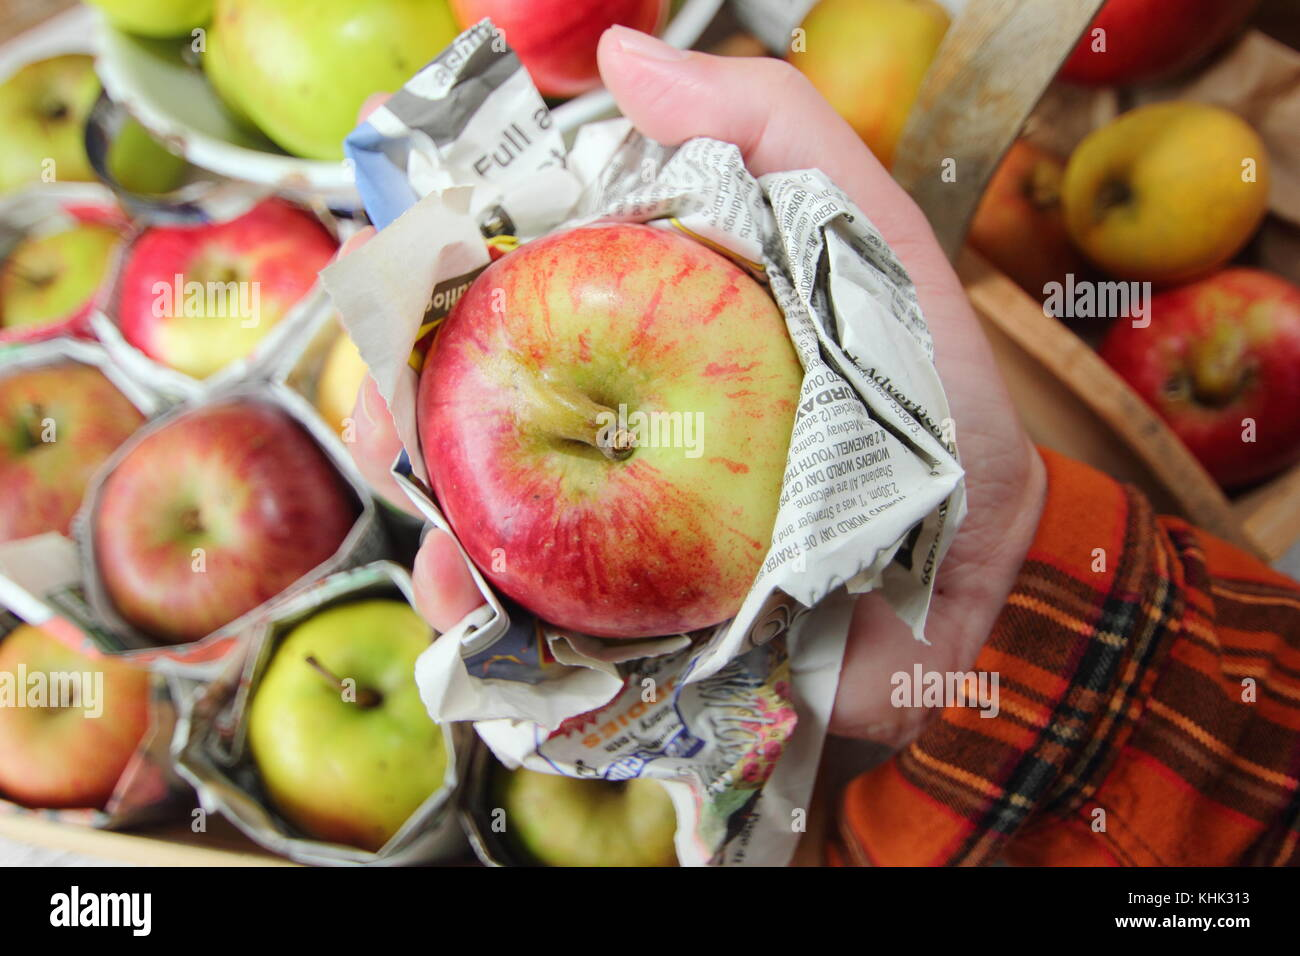 Fresh apples (malus domestica) individually wrapped in newspaper and stored in wooden tray to help prevent rotting - Stock Image